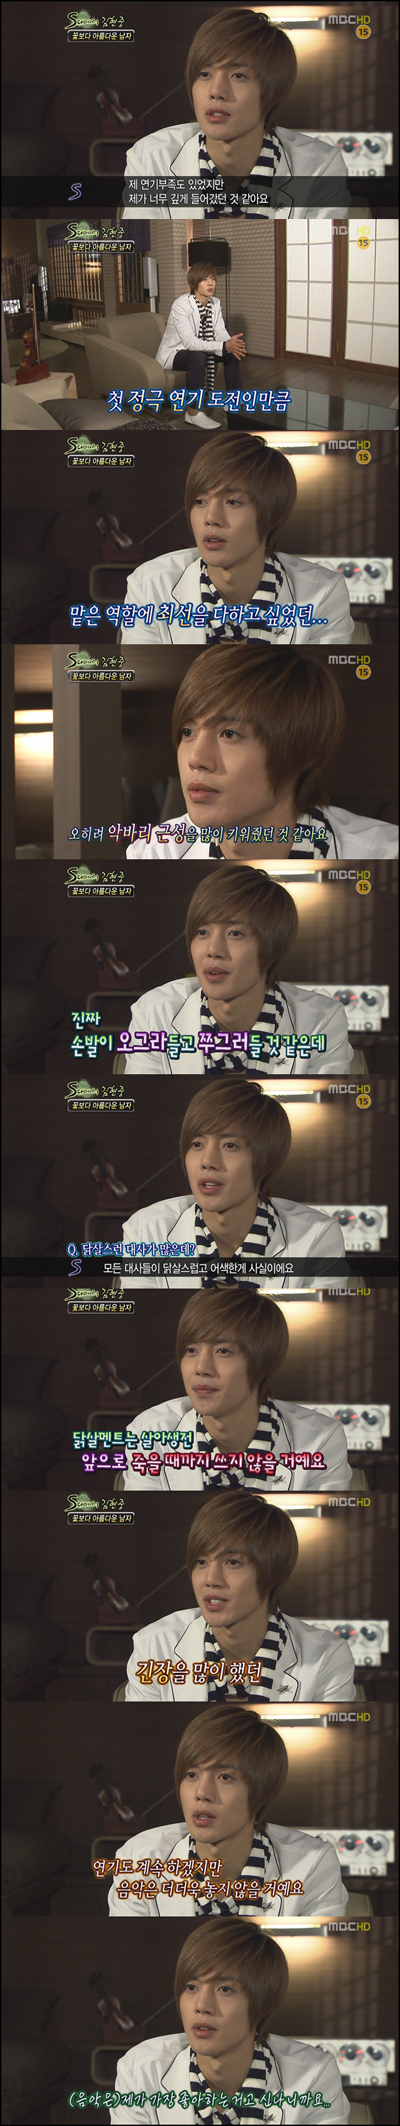 hyunjoong-in-section-tv